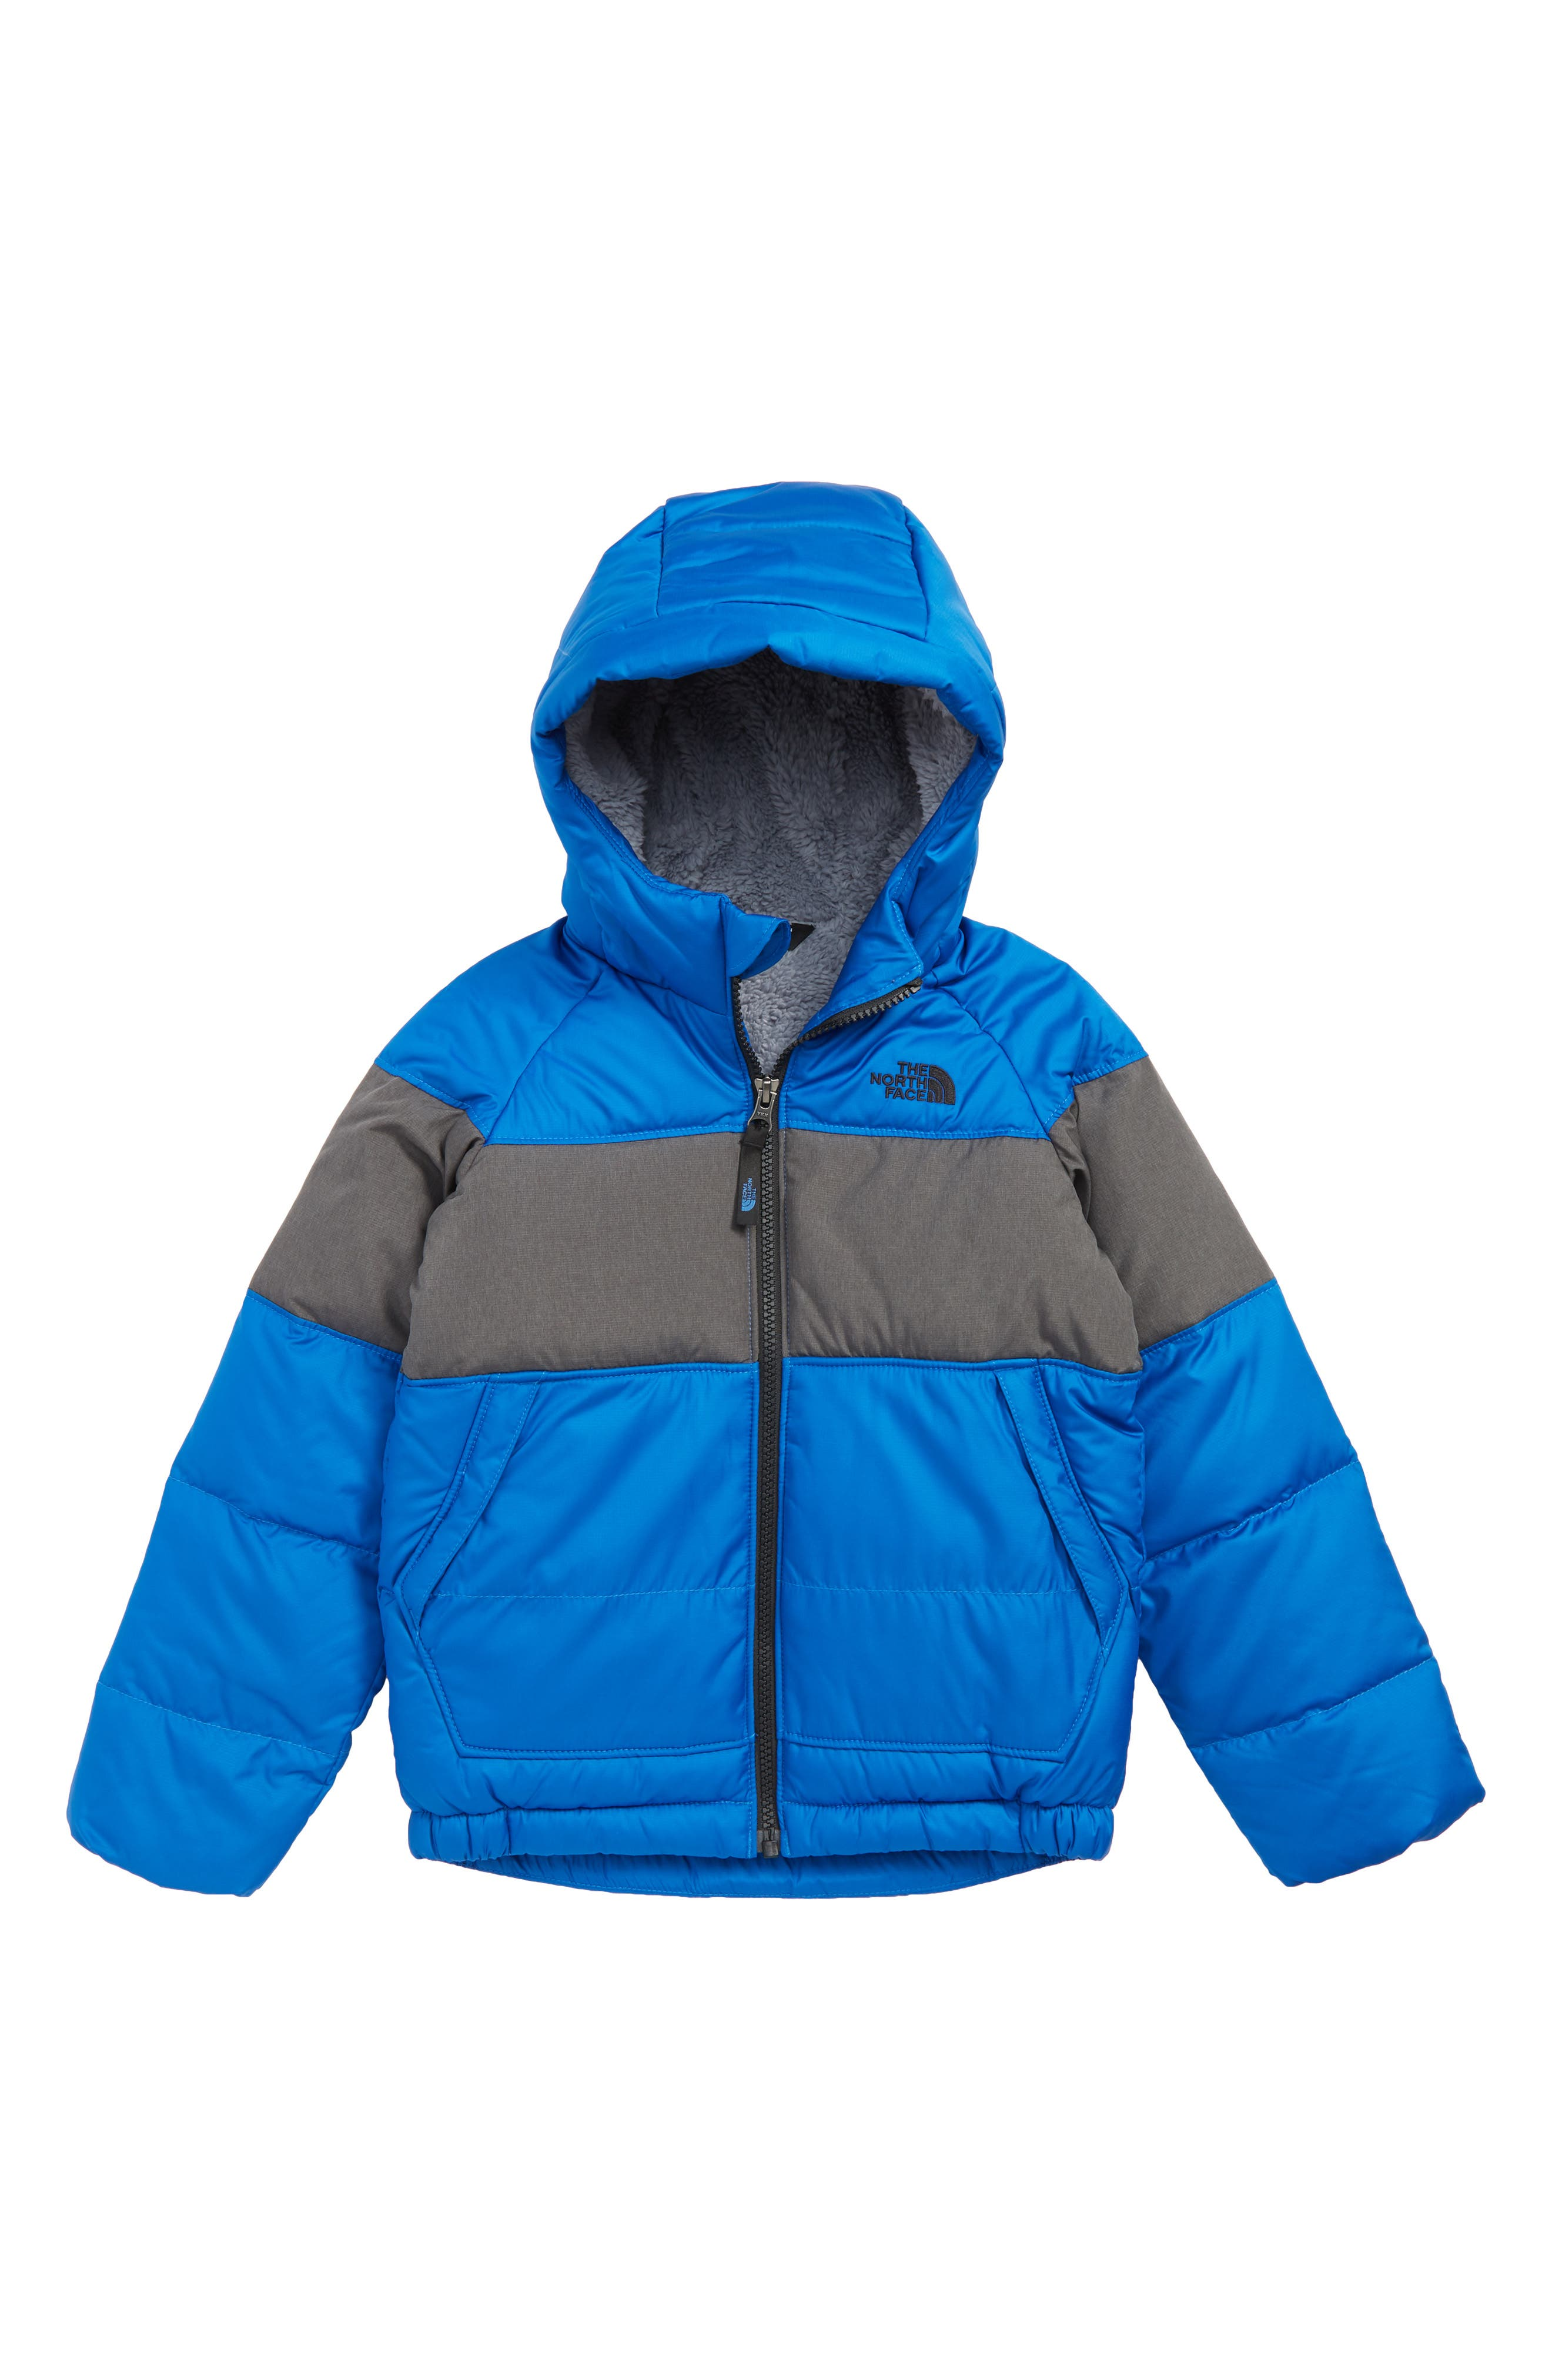 THE NORTH FACE Moondoggy 2.0 Hooded Down Jacket, Main, color, TURKISH SEA